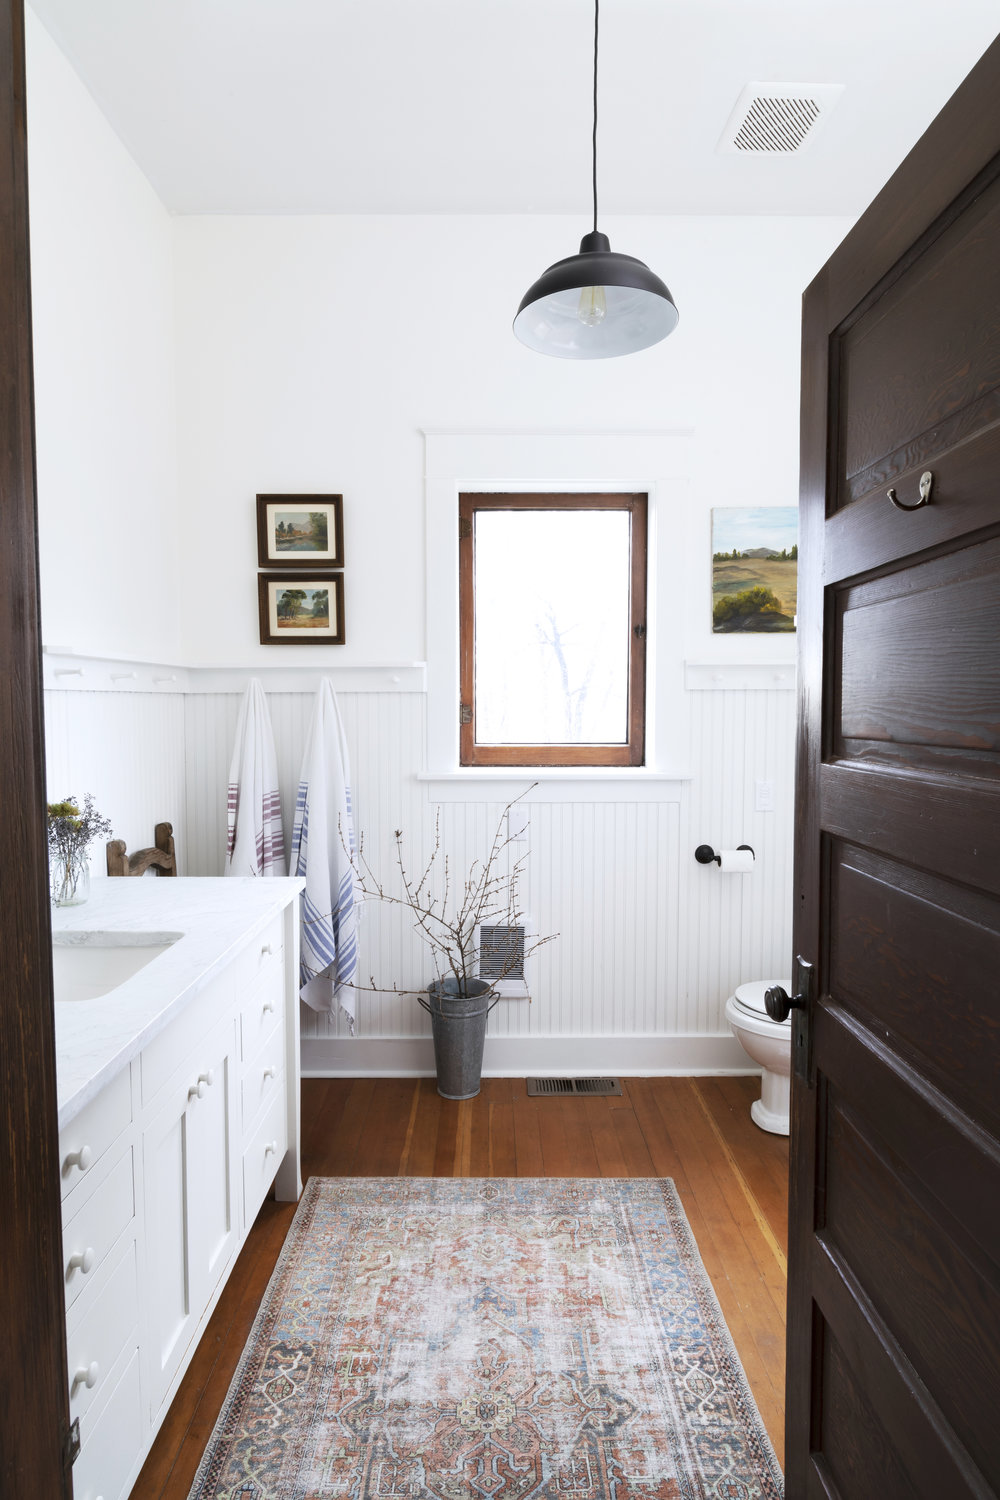 The Grit and Polish - Farmhouse Bathroom Budget Refresh Window Wide.jpg